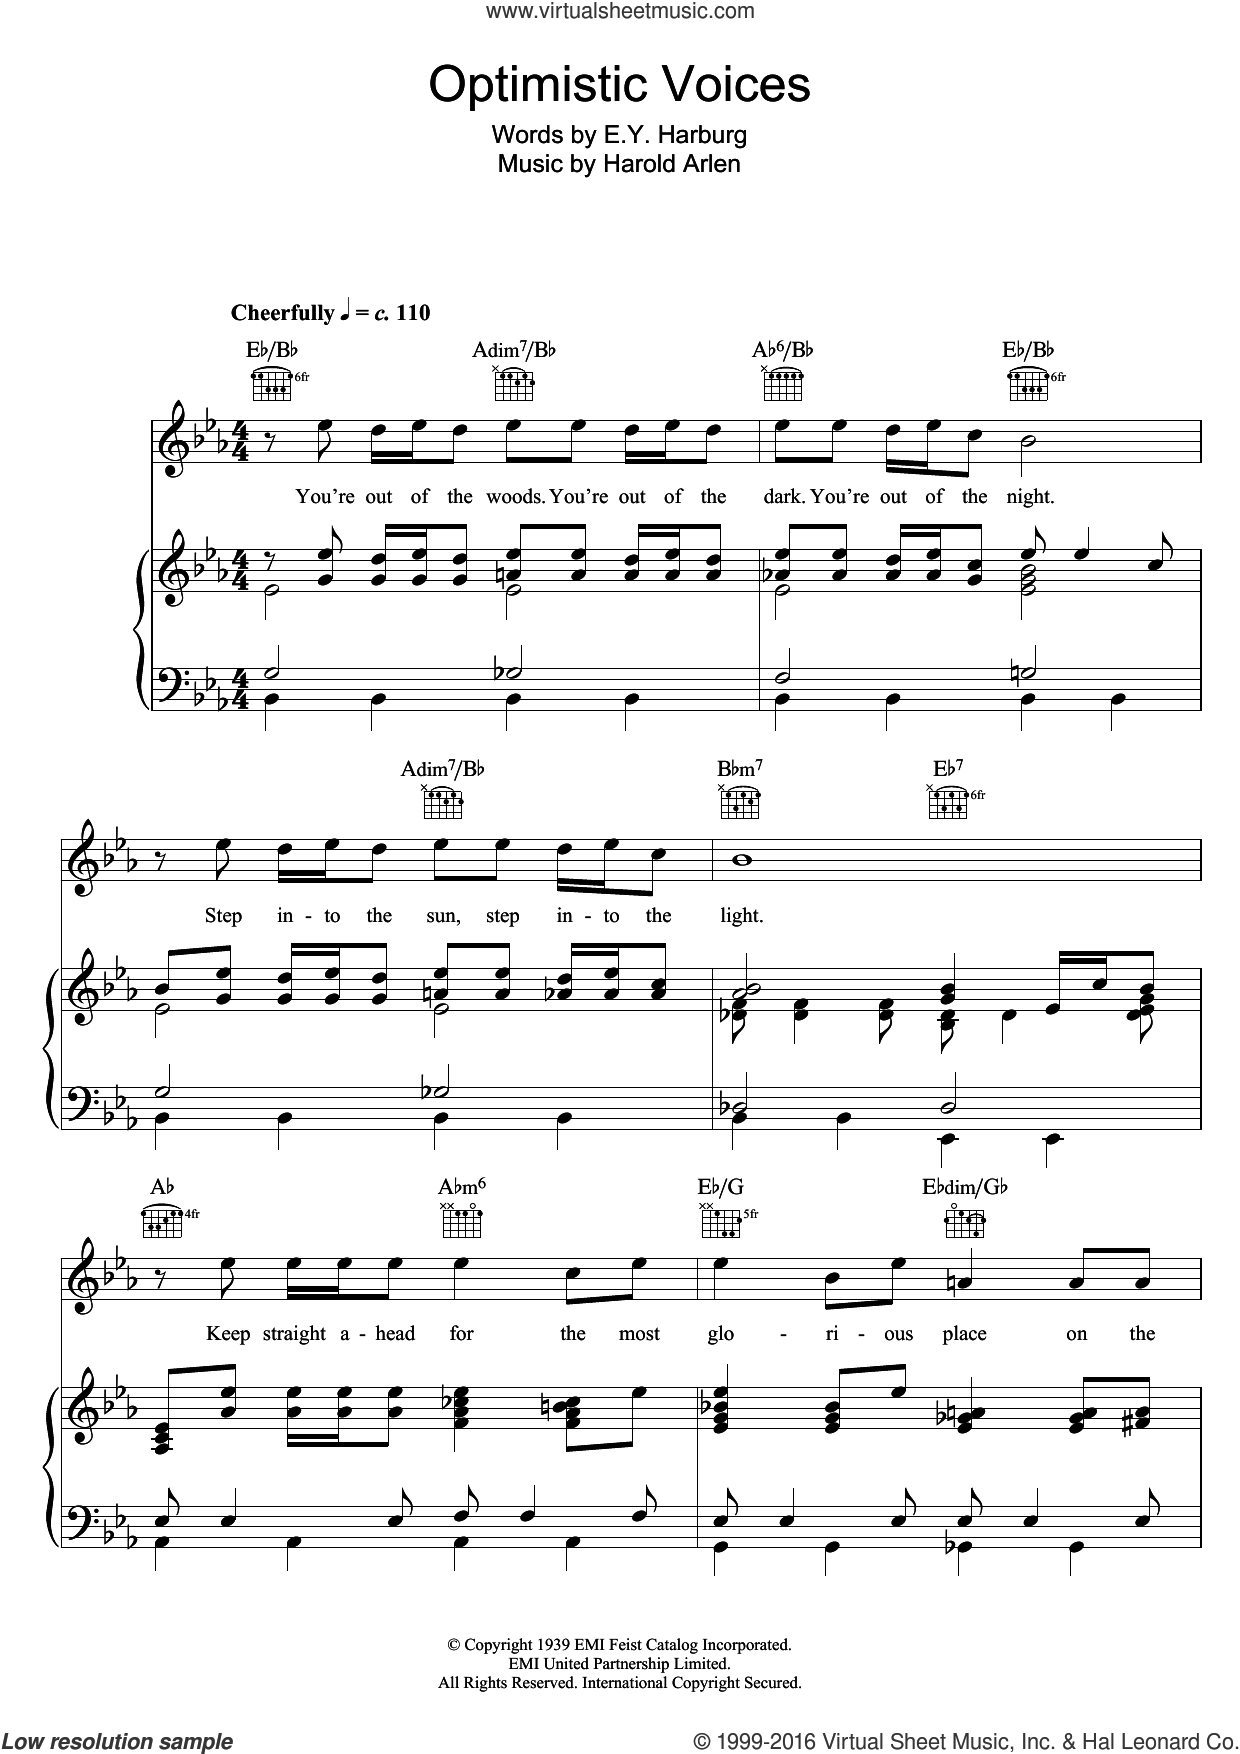 Optimistic Voices sheet music for voice, piano or guitar by Harold Arlen and E.Y. Harburg. Score Image Preview.